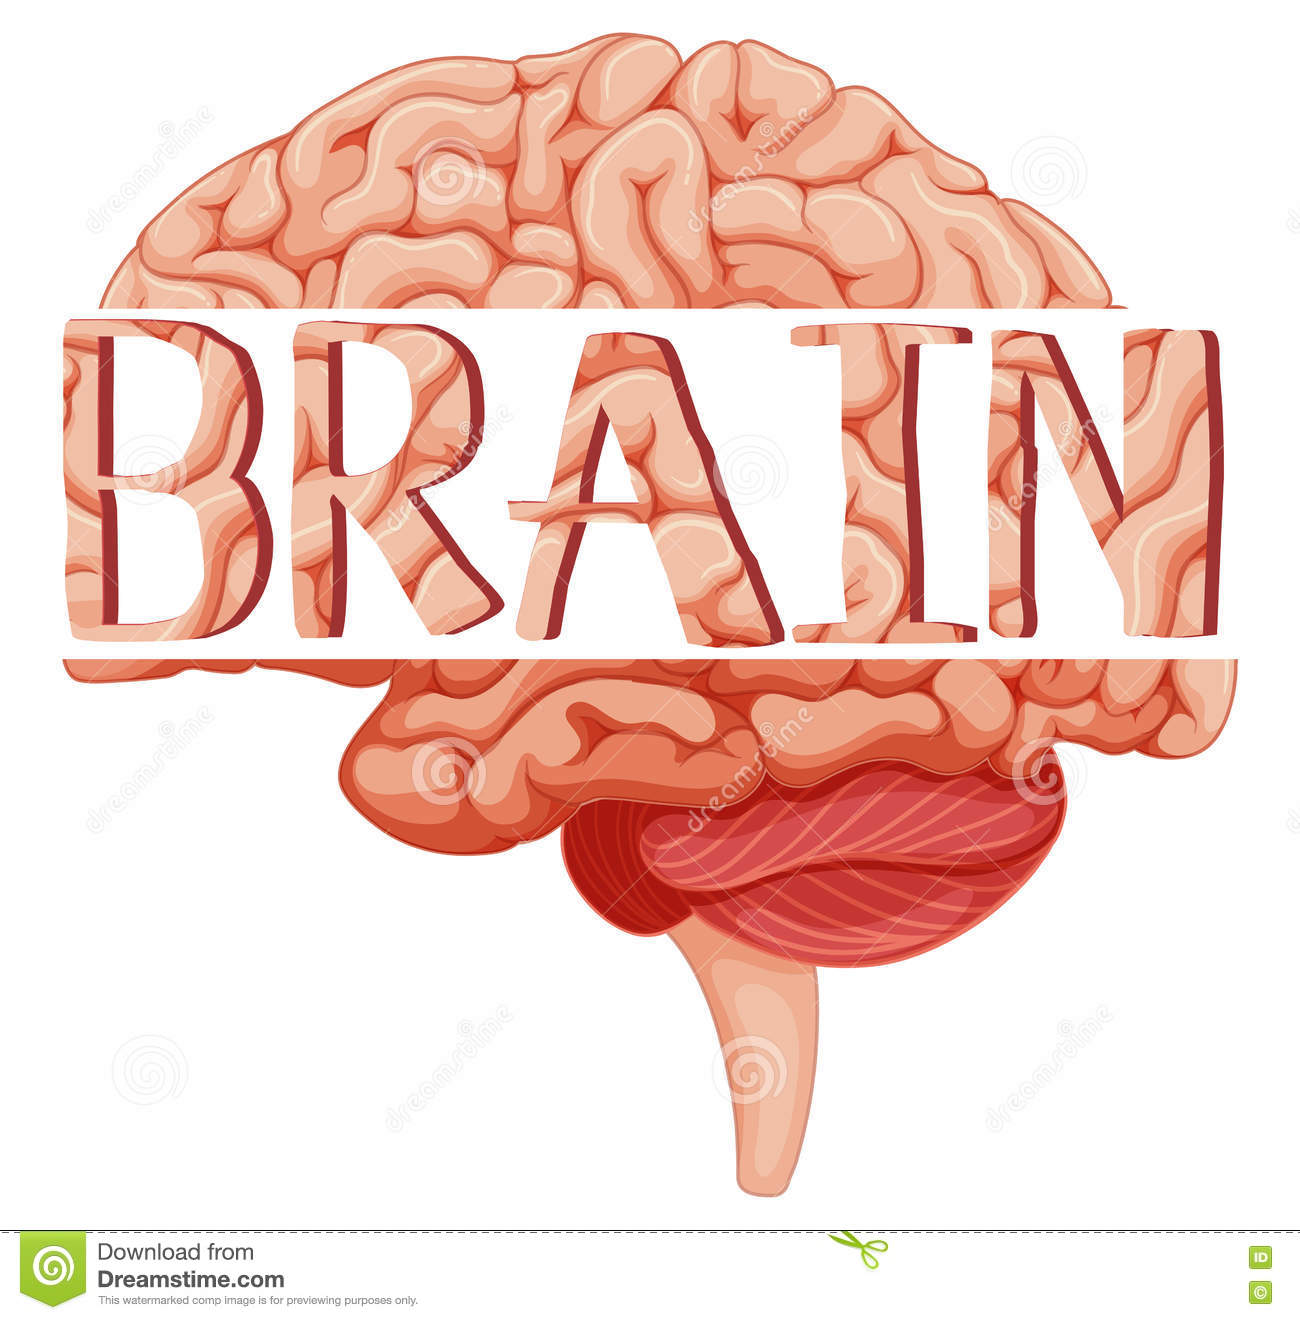 Word brain on human brain stock vector. Illustration of clipping ...